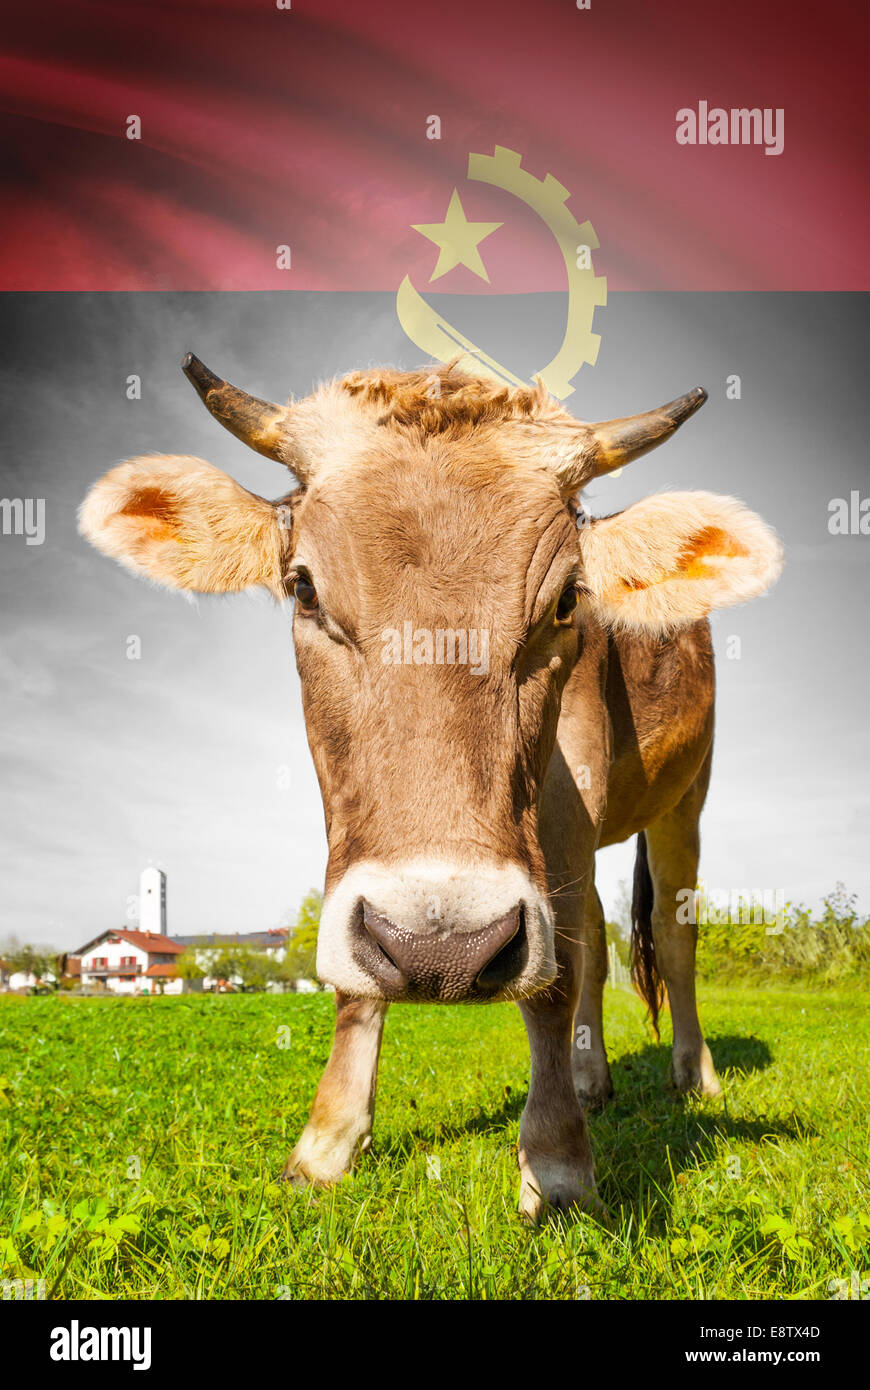 Cow with flag on background series - Angola Stock Photo